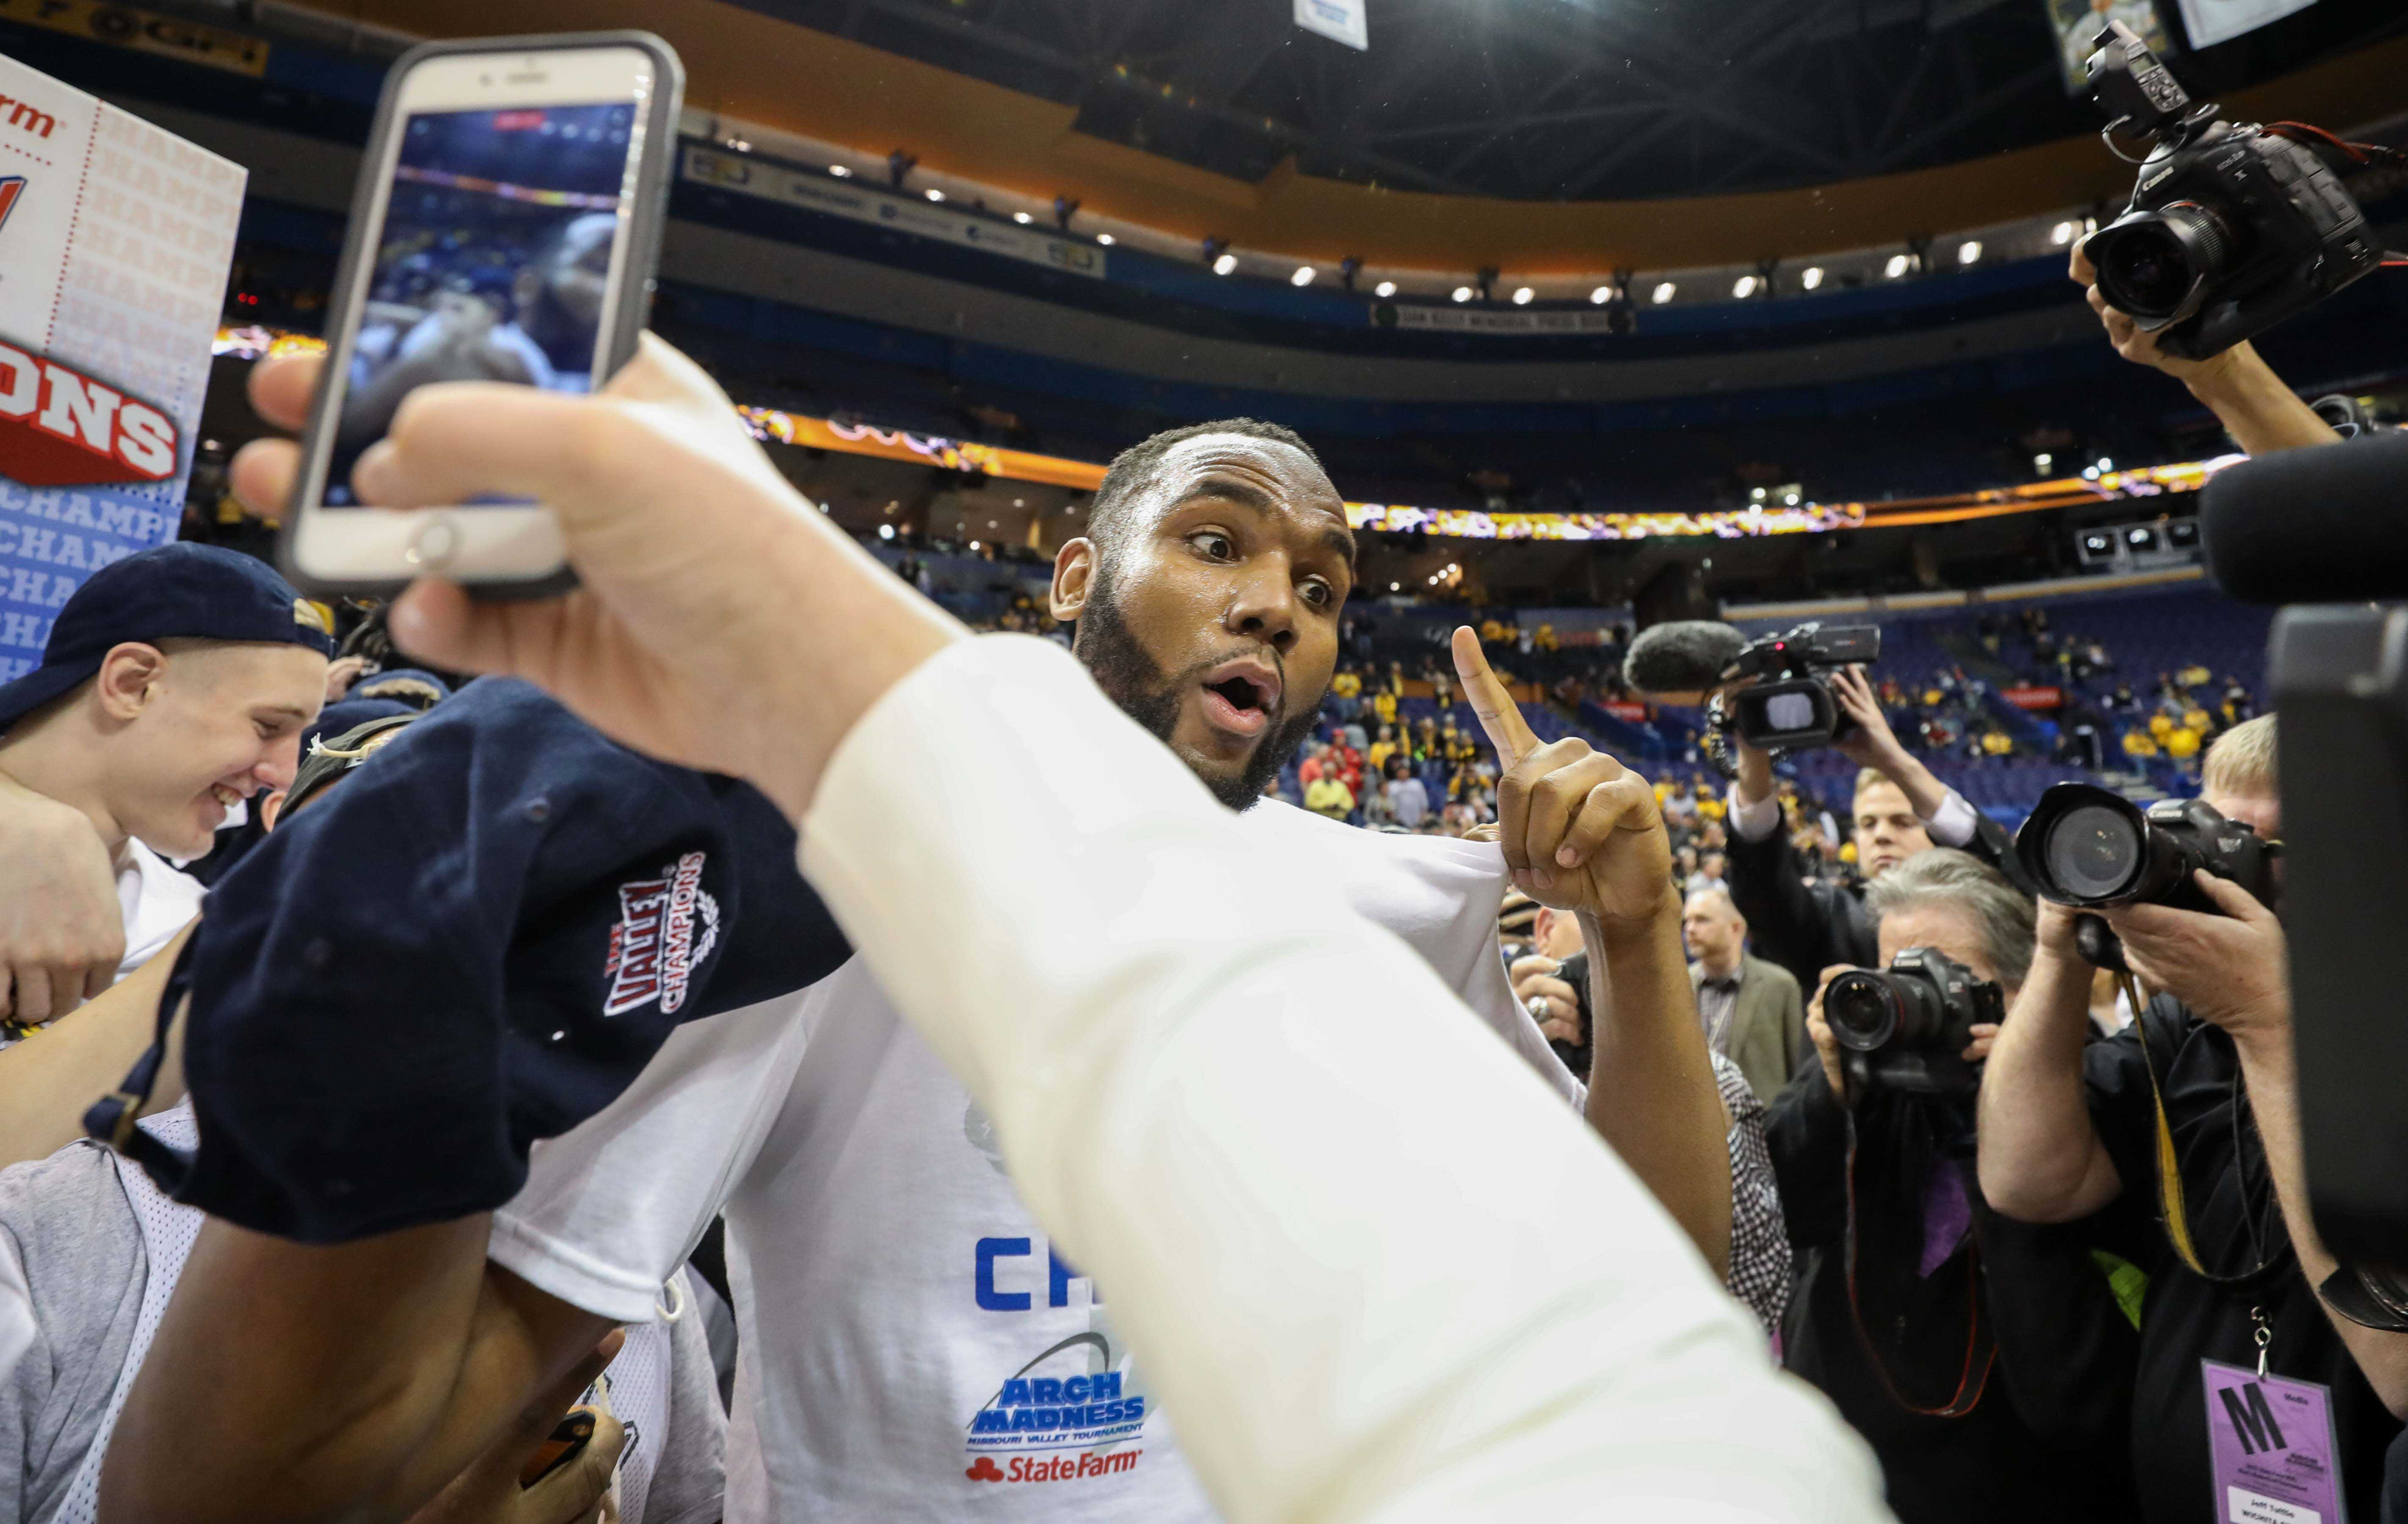 Wichita State's Shaquille Morris (24) gives the camera some love.